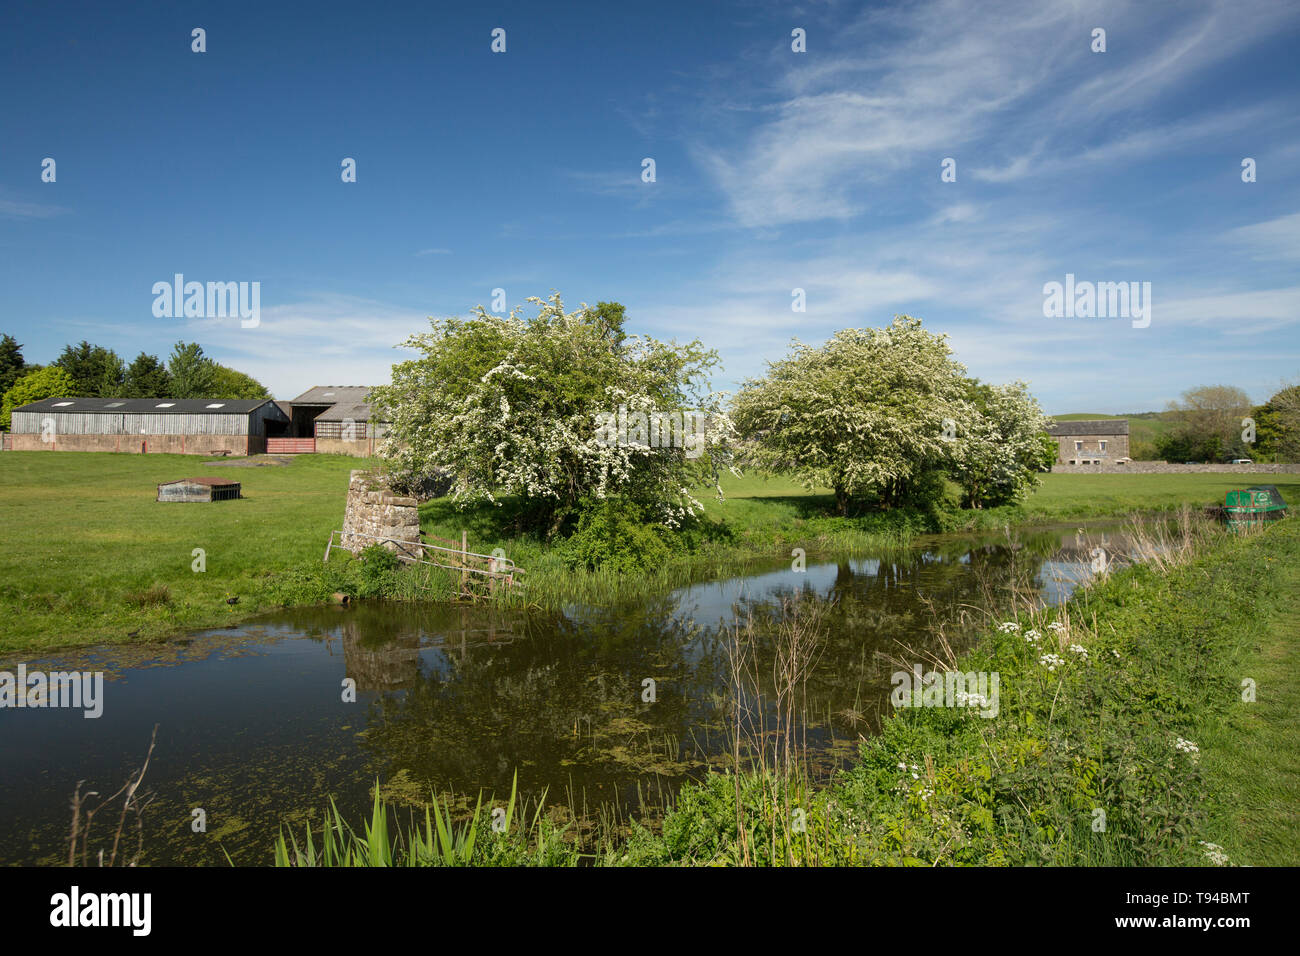 A view of a disused section of the Lancaster Canal near the village of Crooklands in Cumbria with flowering hawthorn trees, Crataegus monogyna, on its - Stock Image